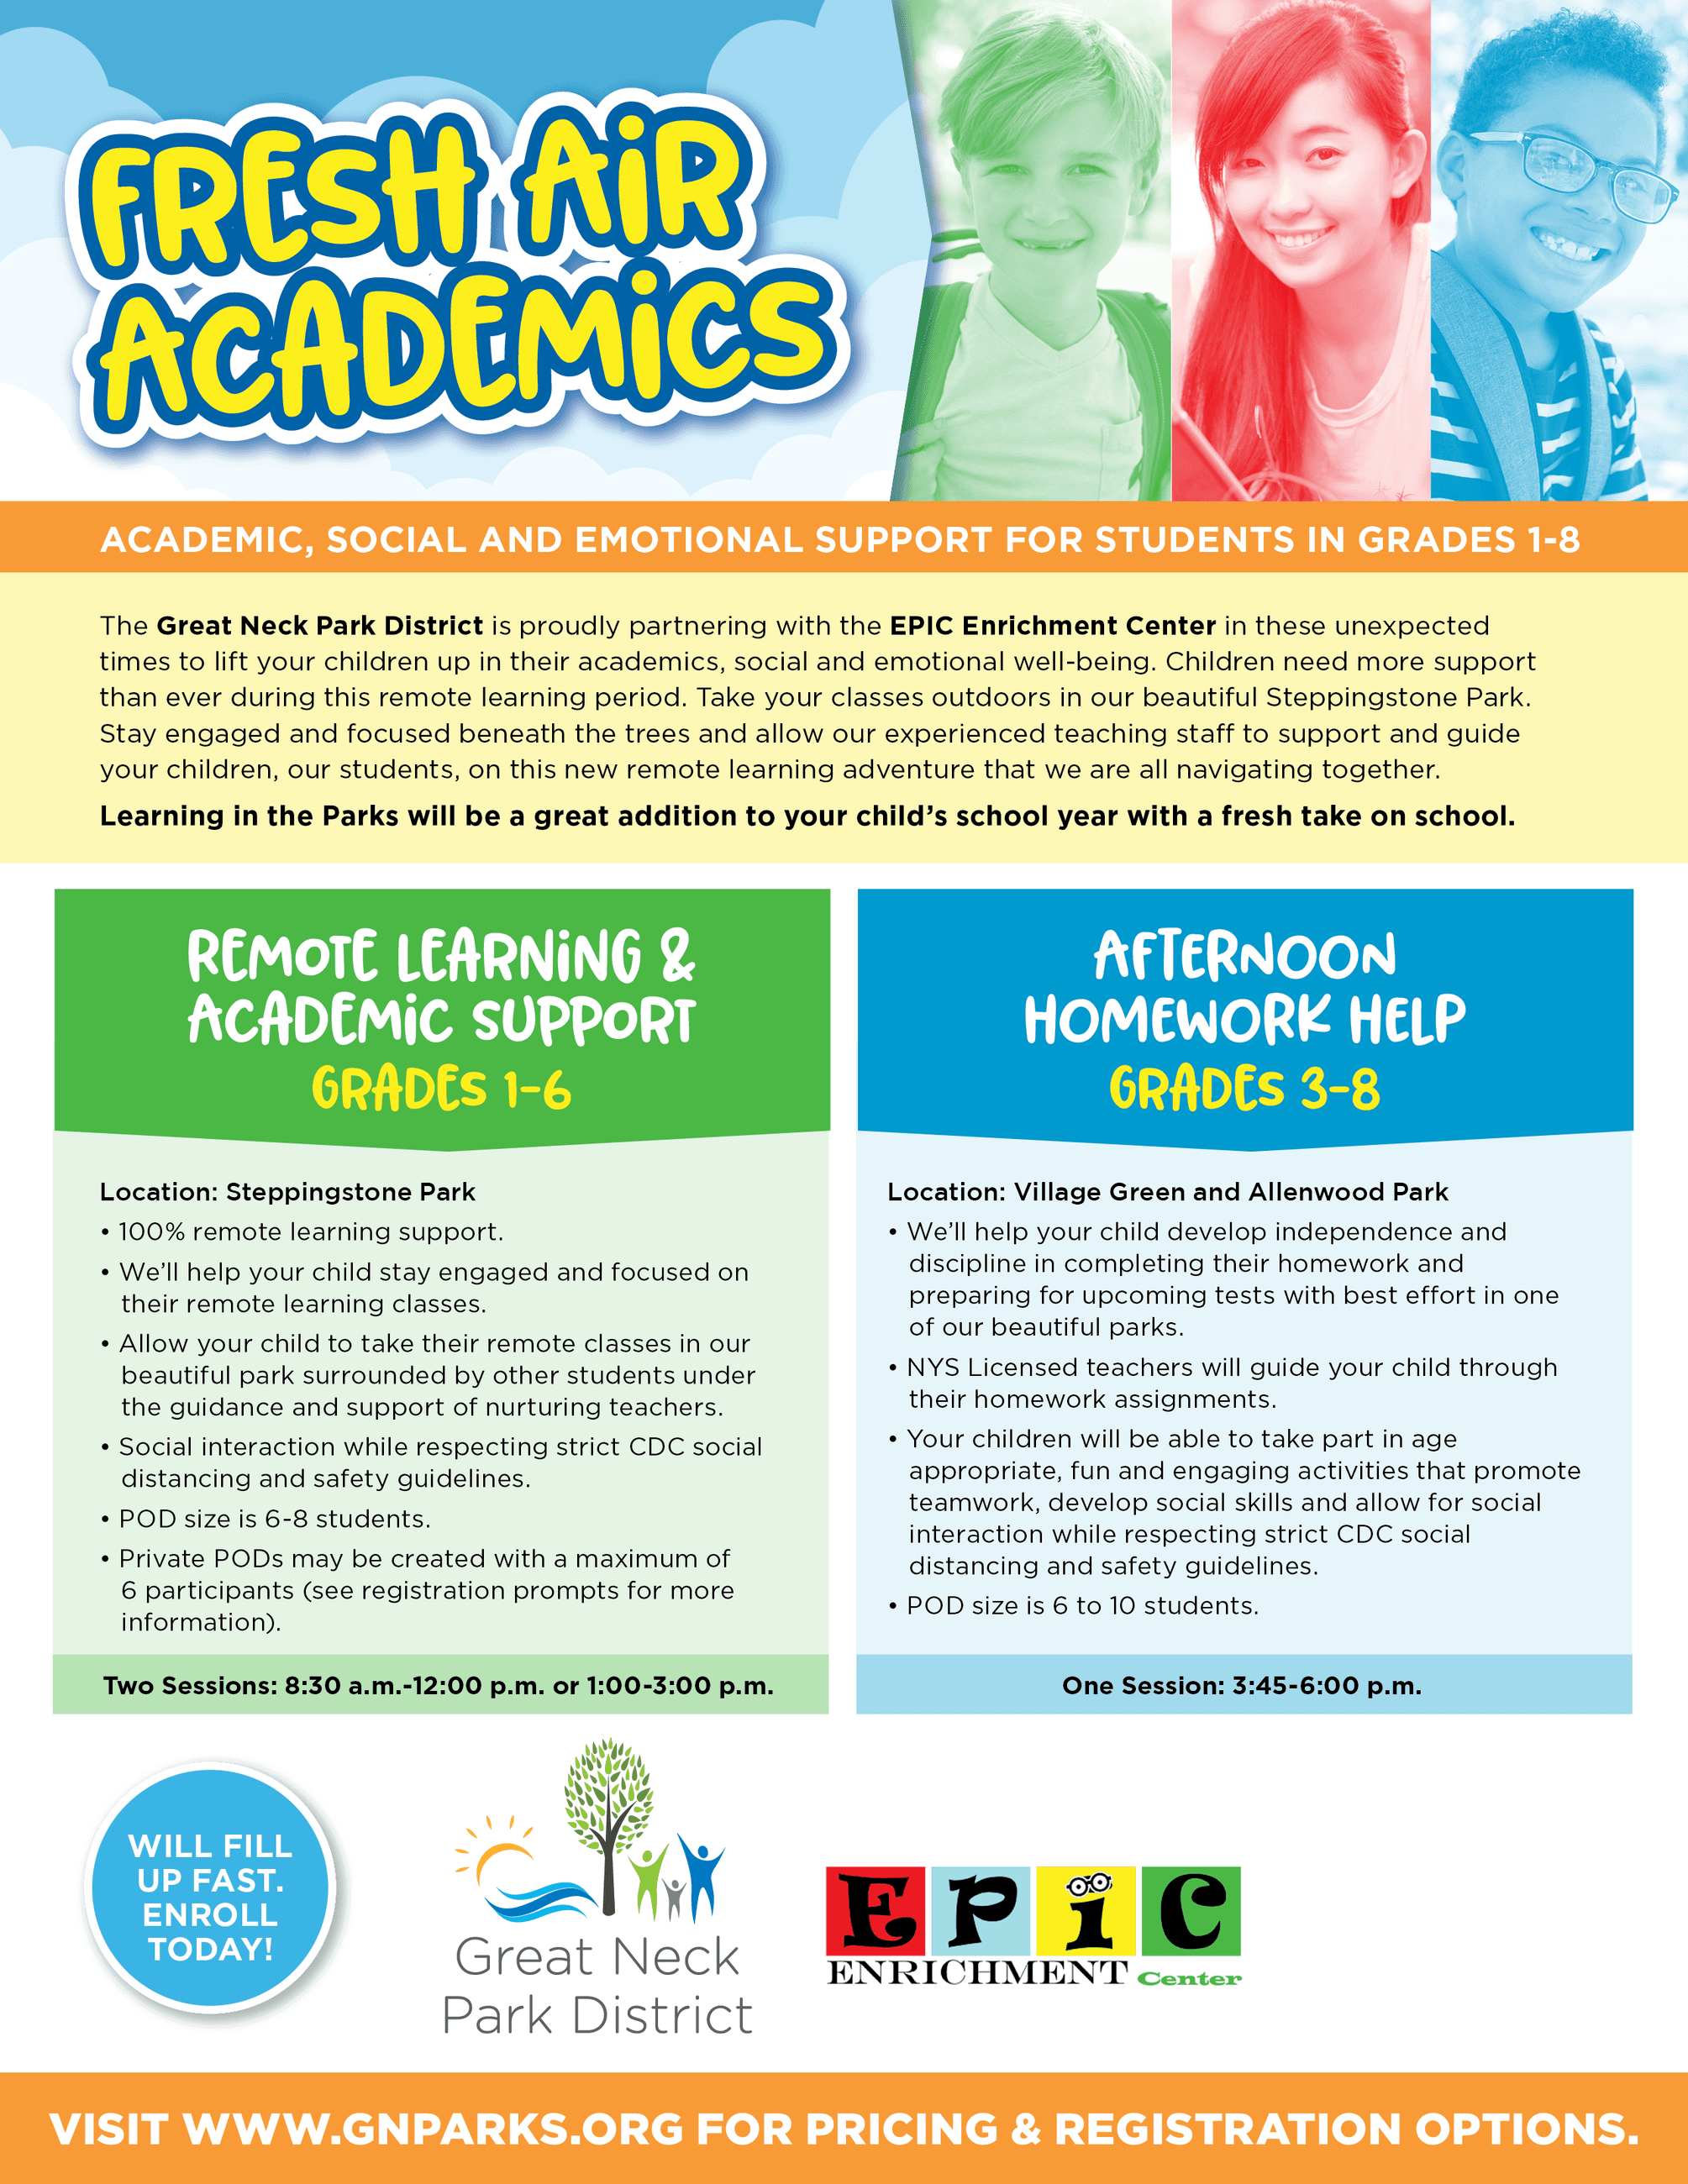 8.5x11 Fresh Air Academics Flyer 9-2020 WEB